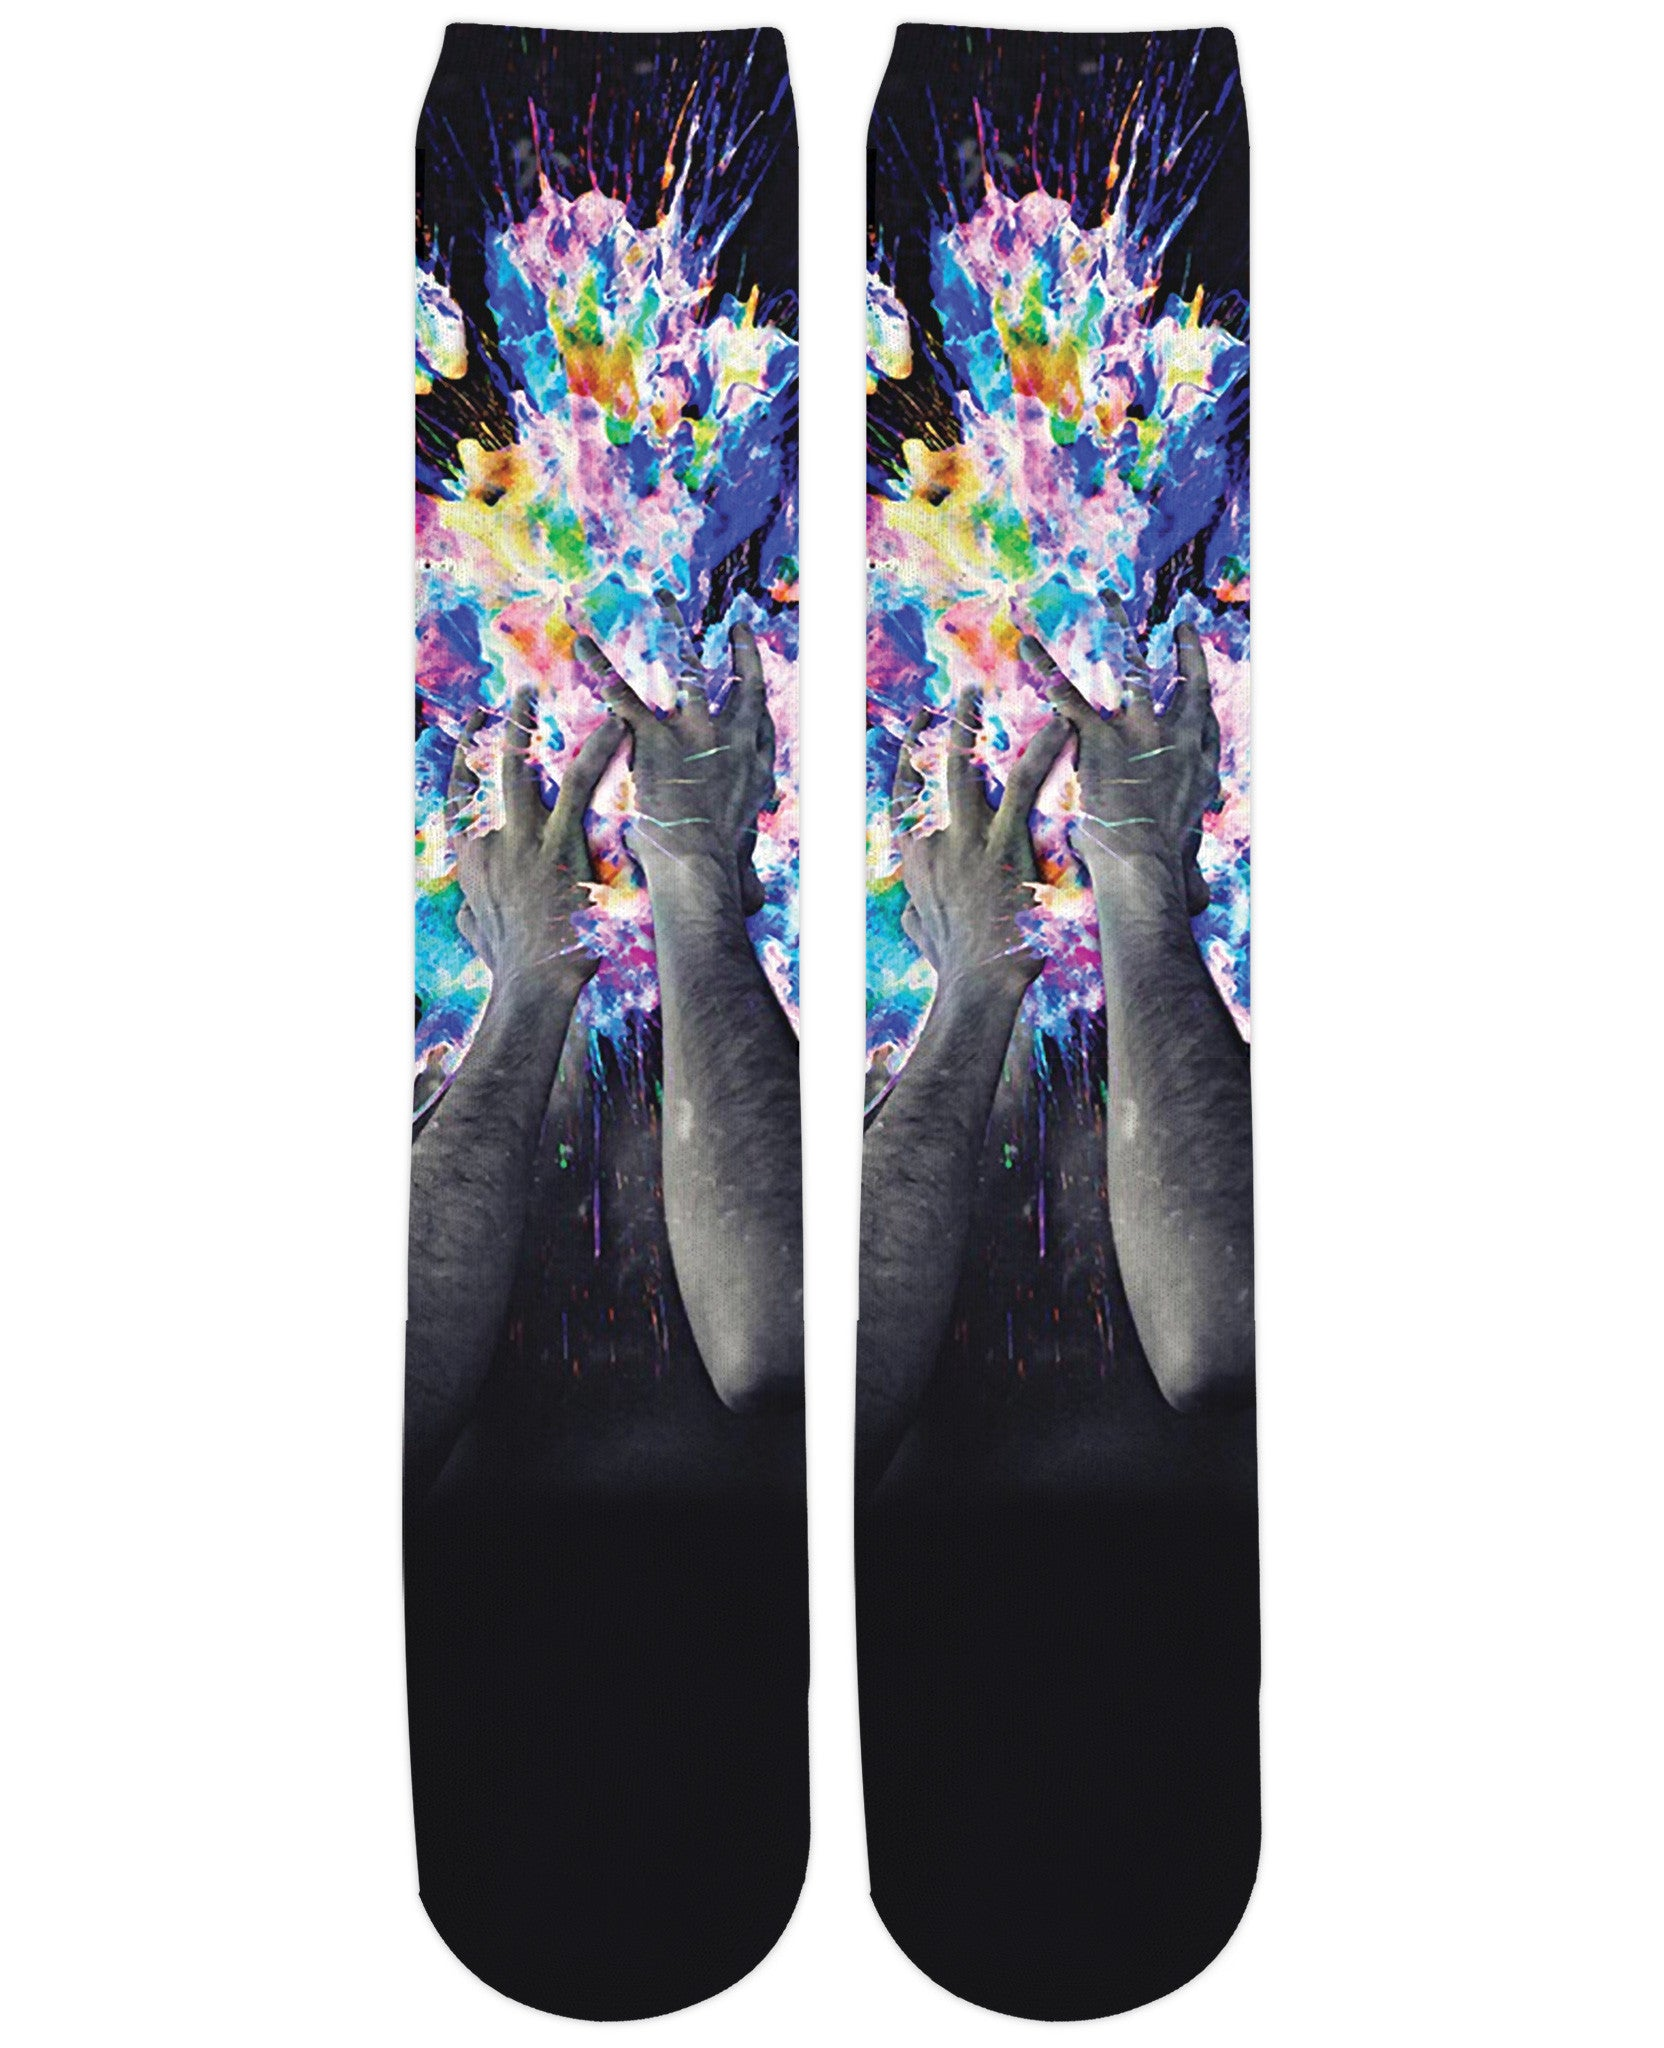 Artistic Bomb Knee-High Socks - TShirtsRUS.co